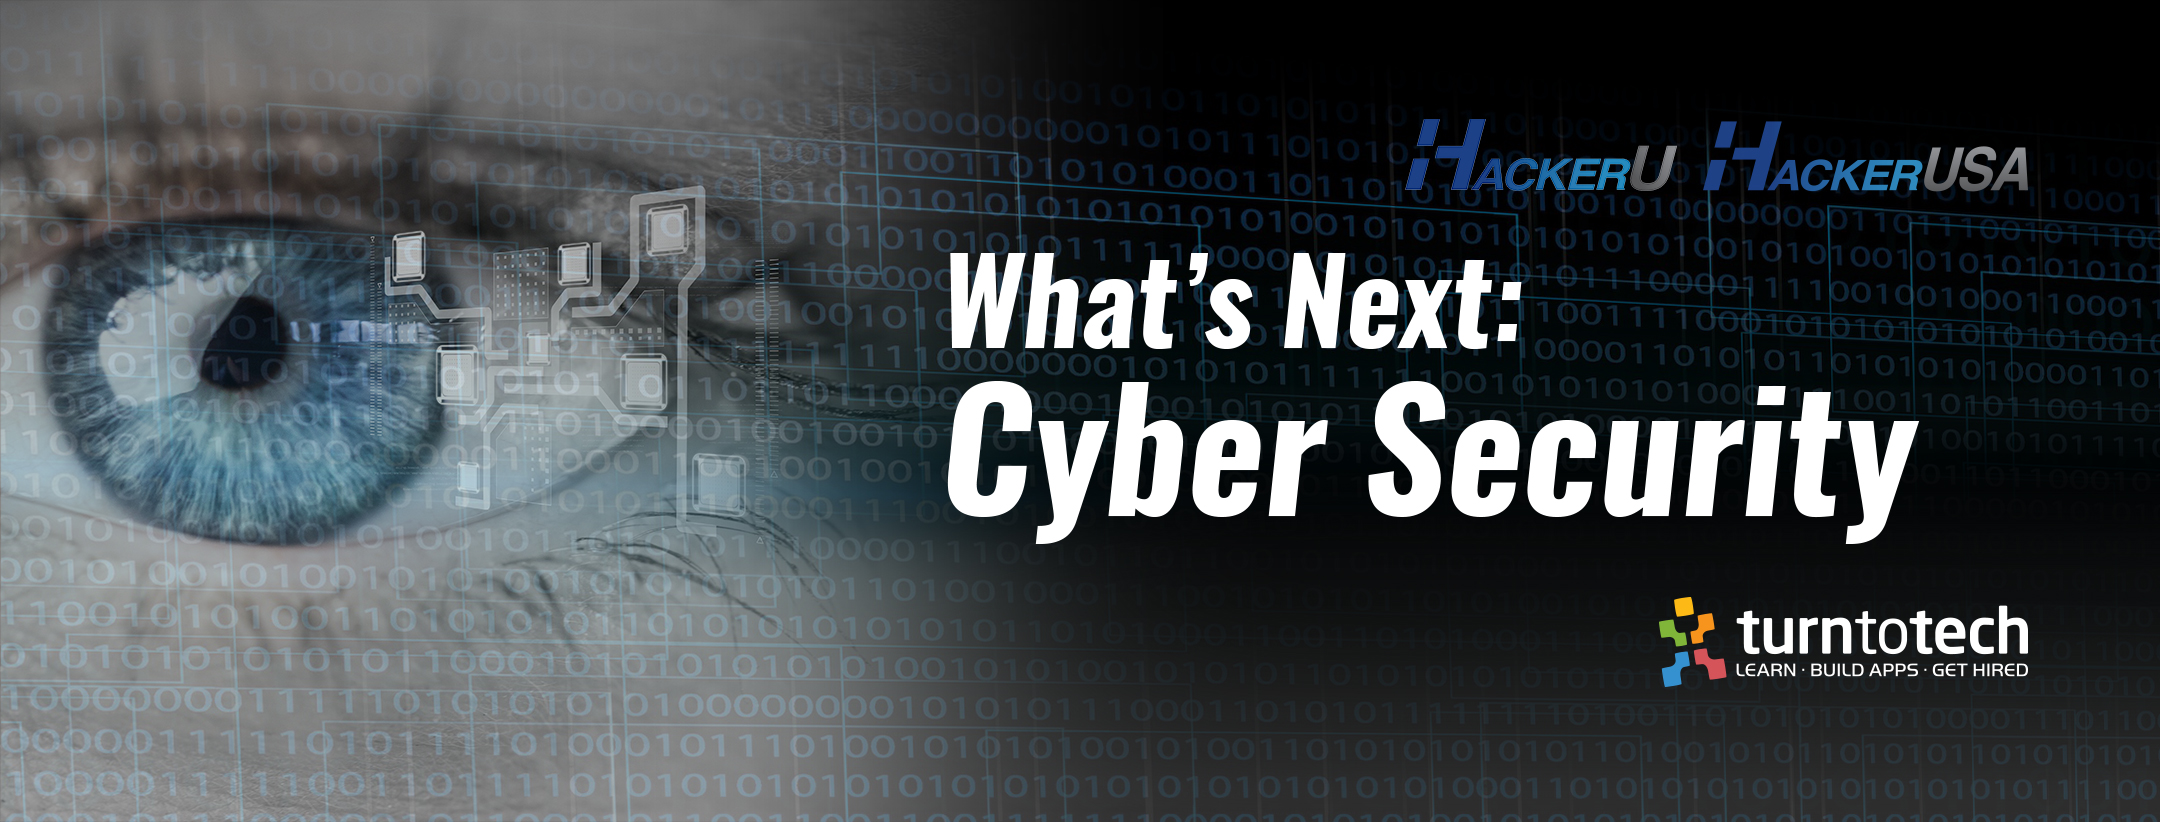 Cyber Security TurnToTech HackerUSA